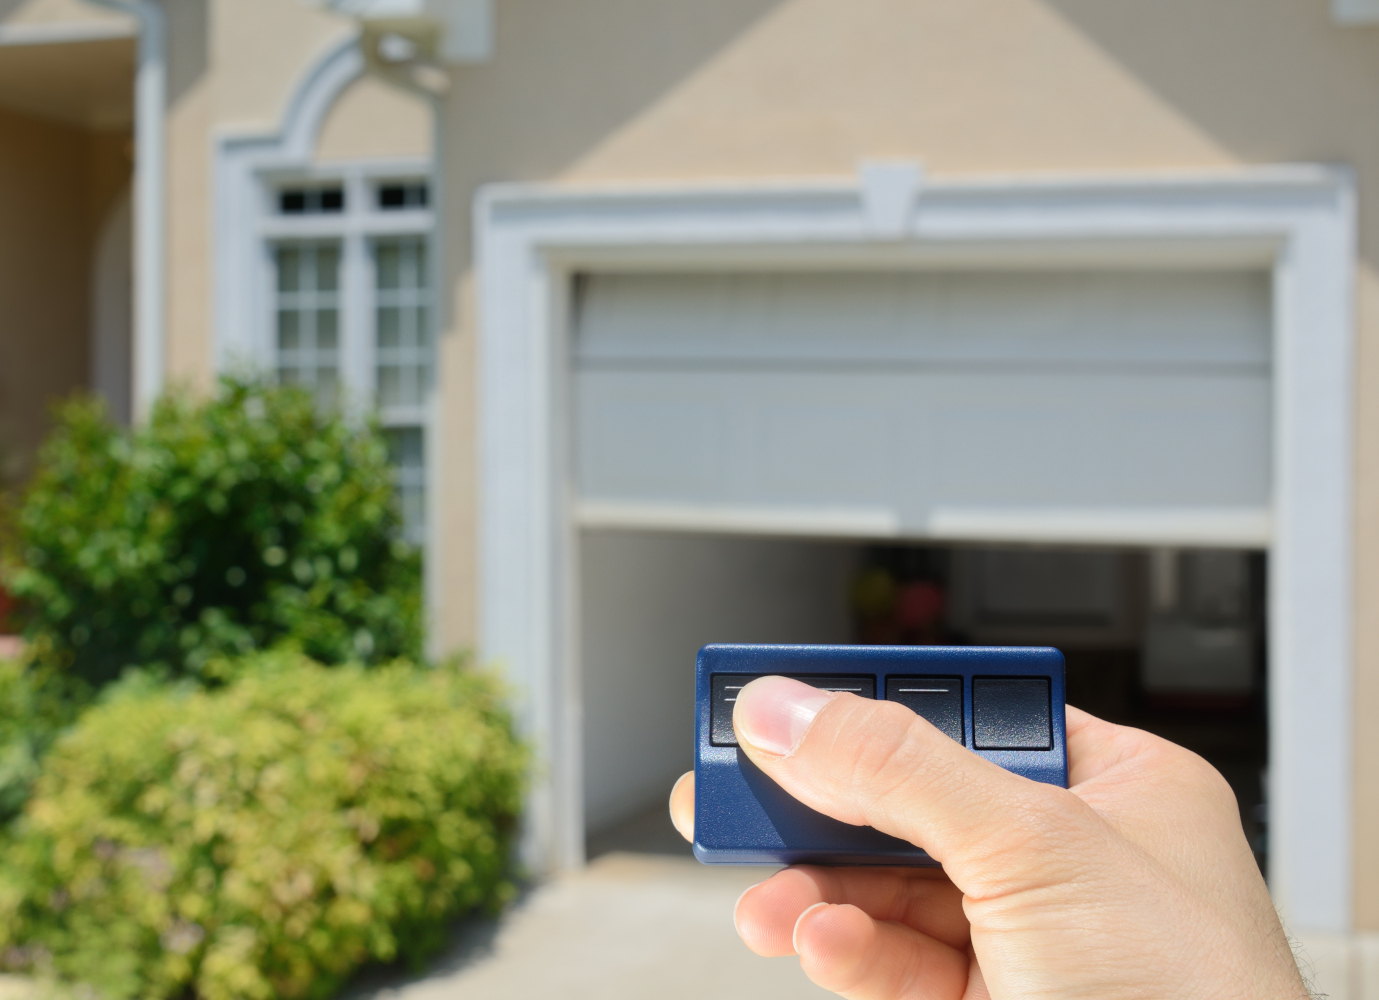 Installing a keypad to your garage door opener system